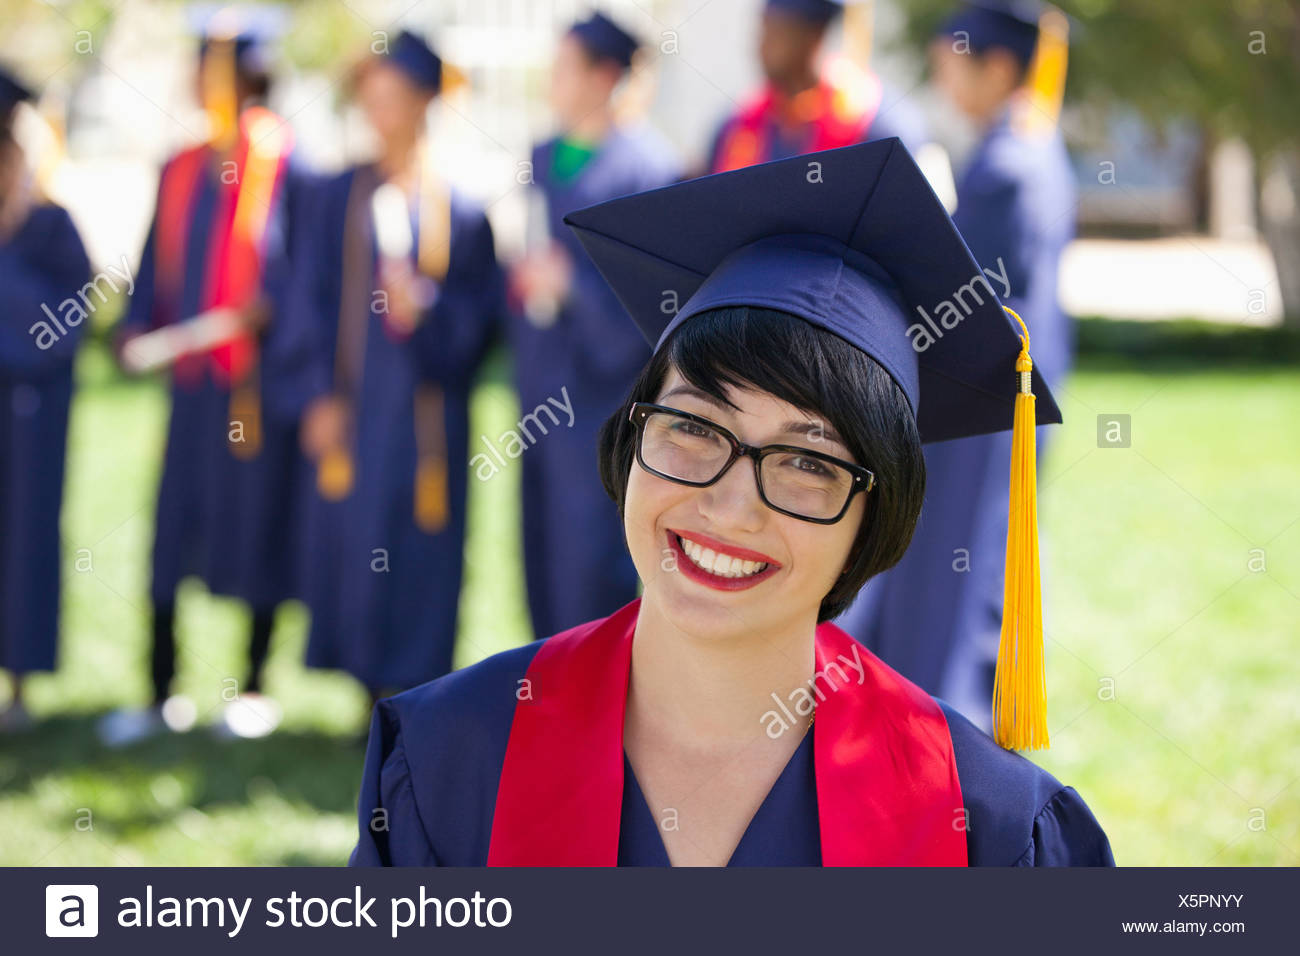 Graduate in cap and gown Photo Stock